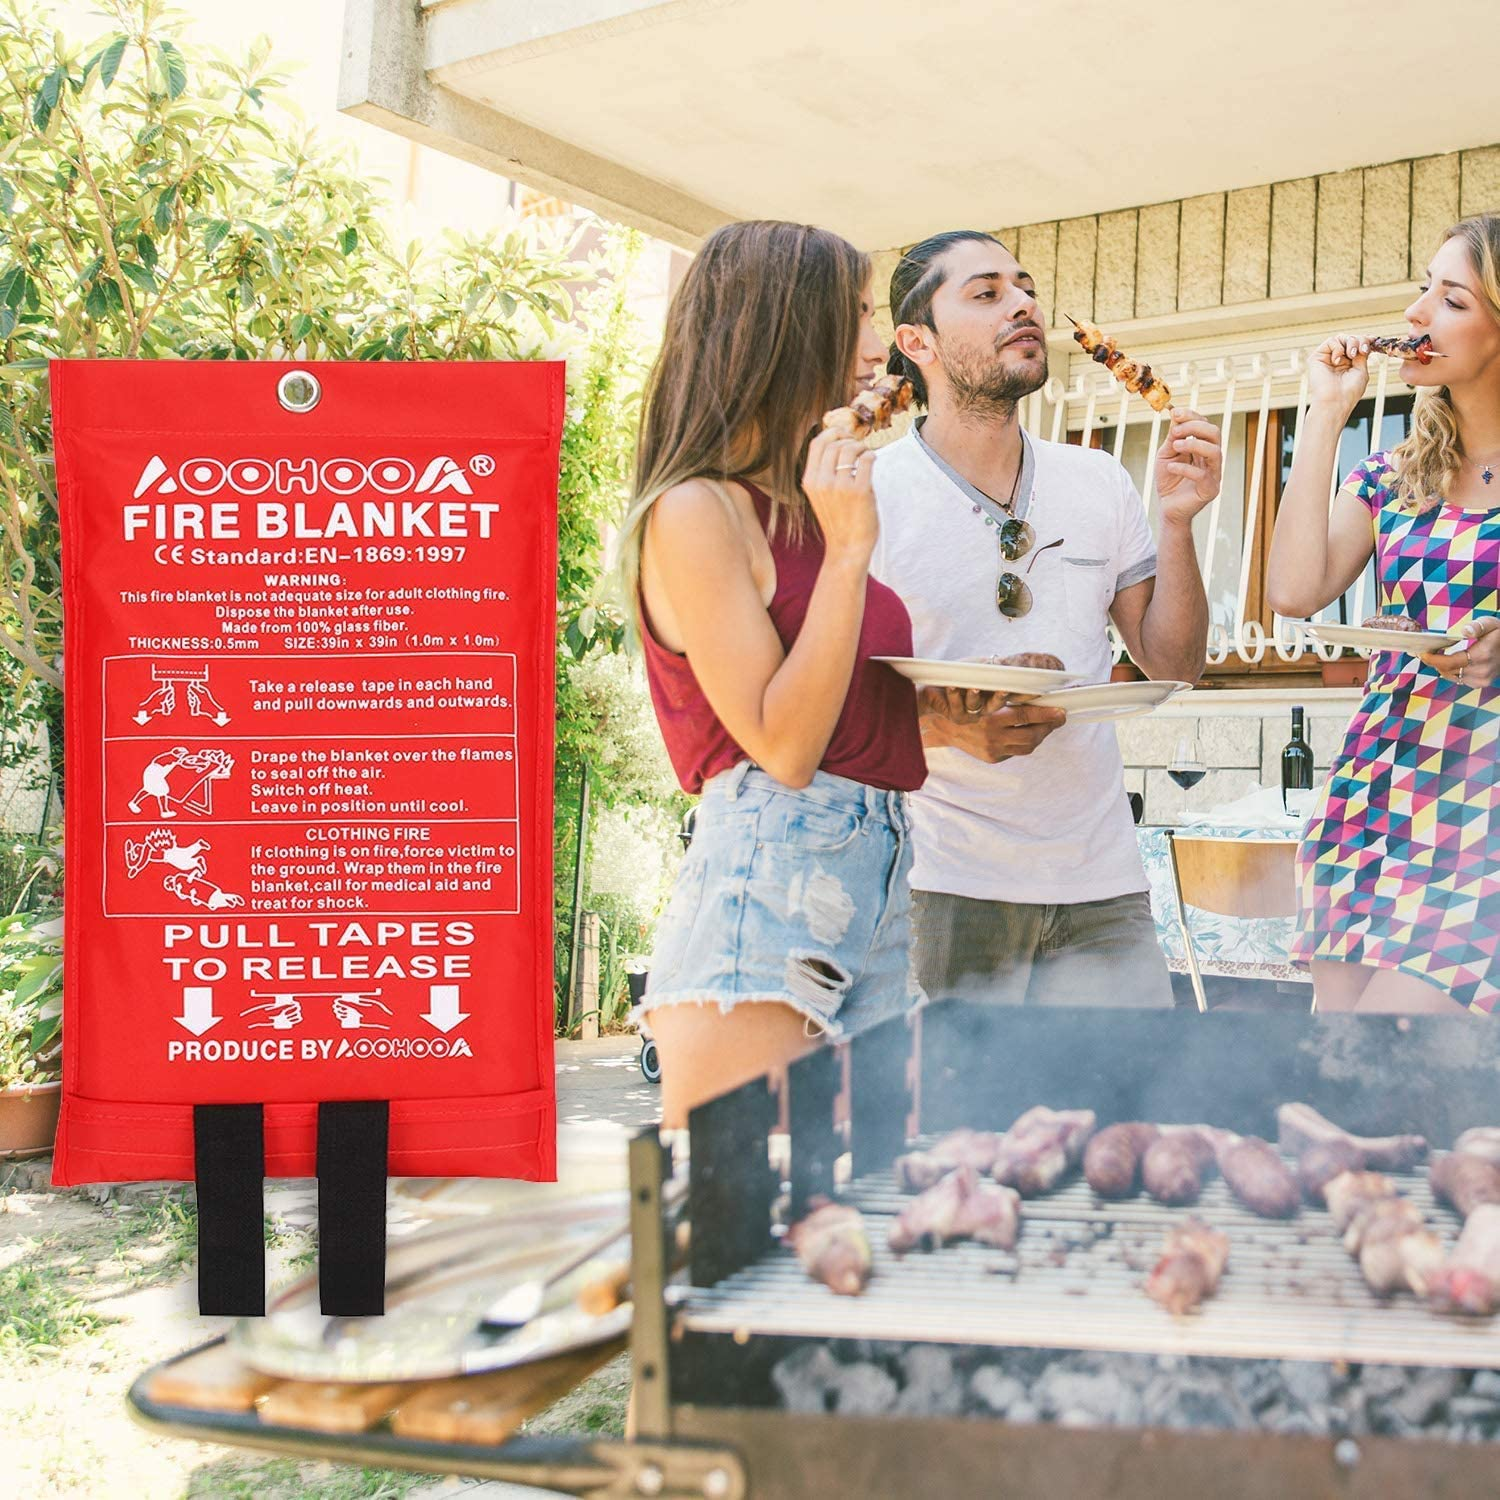 AOOHOOA Fire Blanket Fiberglass Emergency Fire Safety Blankets Flame Retardant Protection for Kitchen,Camping,Fireplace,Grill,Car,RV,Boat